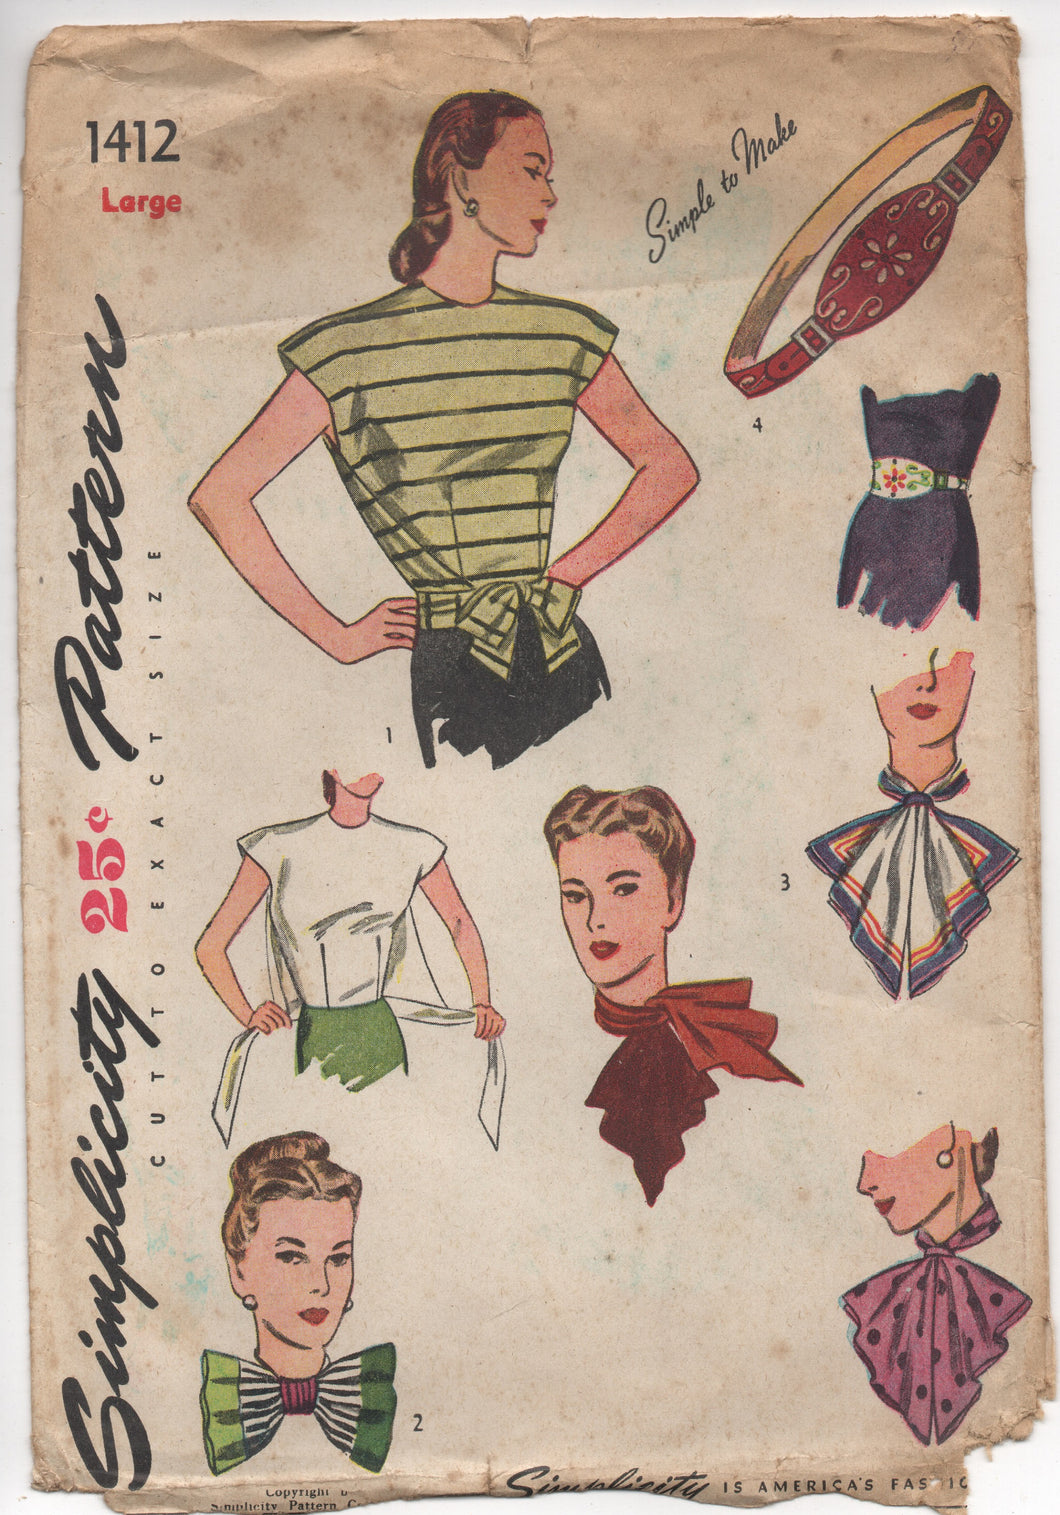 1940's Simplicity Wrap Blouse with Tie-Front, Belt, Jabot, Scarf, Necktie Pattern - Bust 38-40